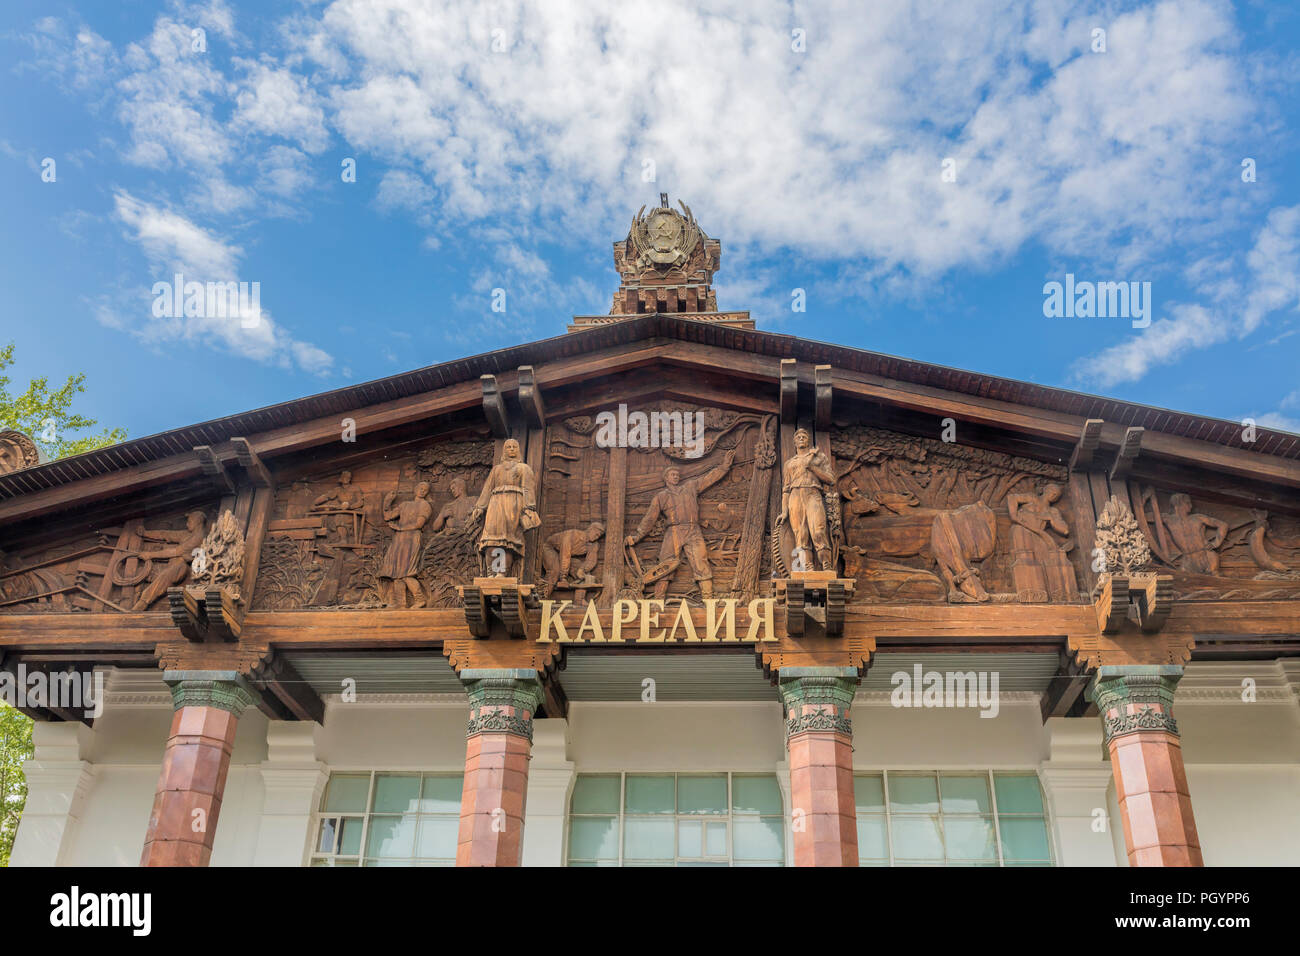 VVTs  @ Источник: https://www.sputnik8.com/en/moscow/activities/280-the-all-russian-exhibition-center-vvts of Karelia, VDNKH, Moscow, Russia - Stock Image